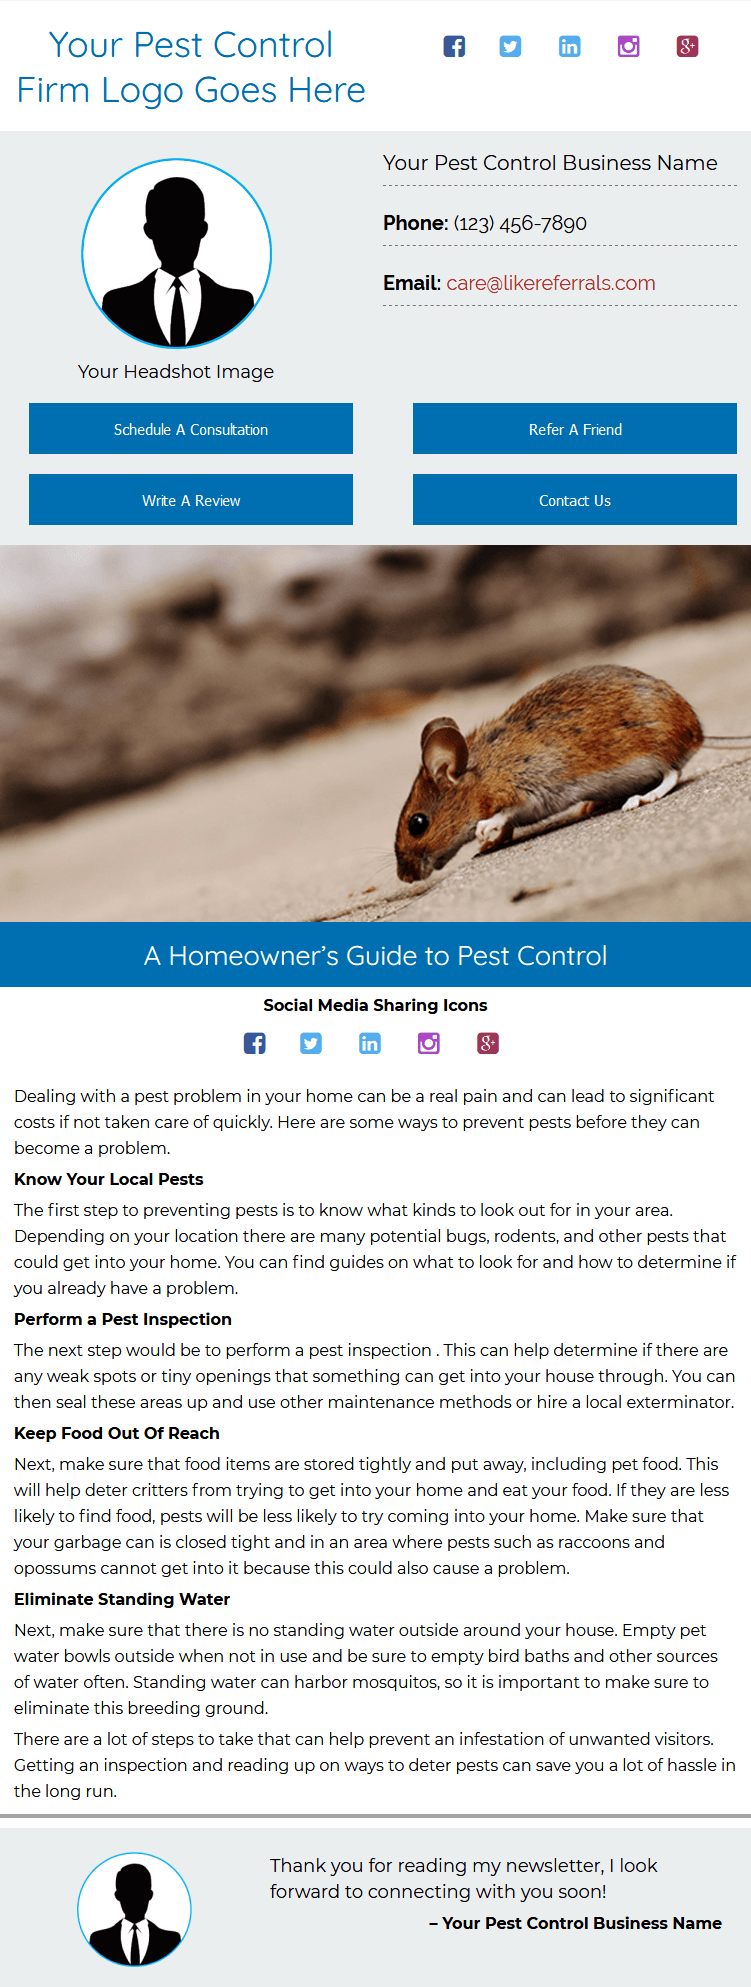 Email Newsletter Marketing Services for Pest Control Services